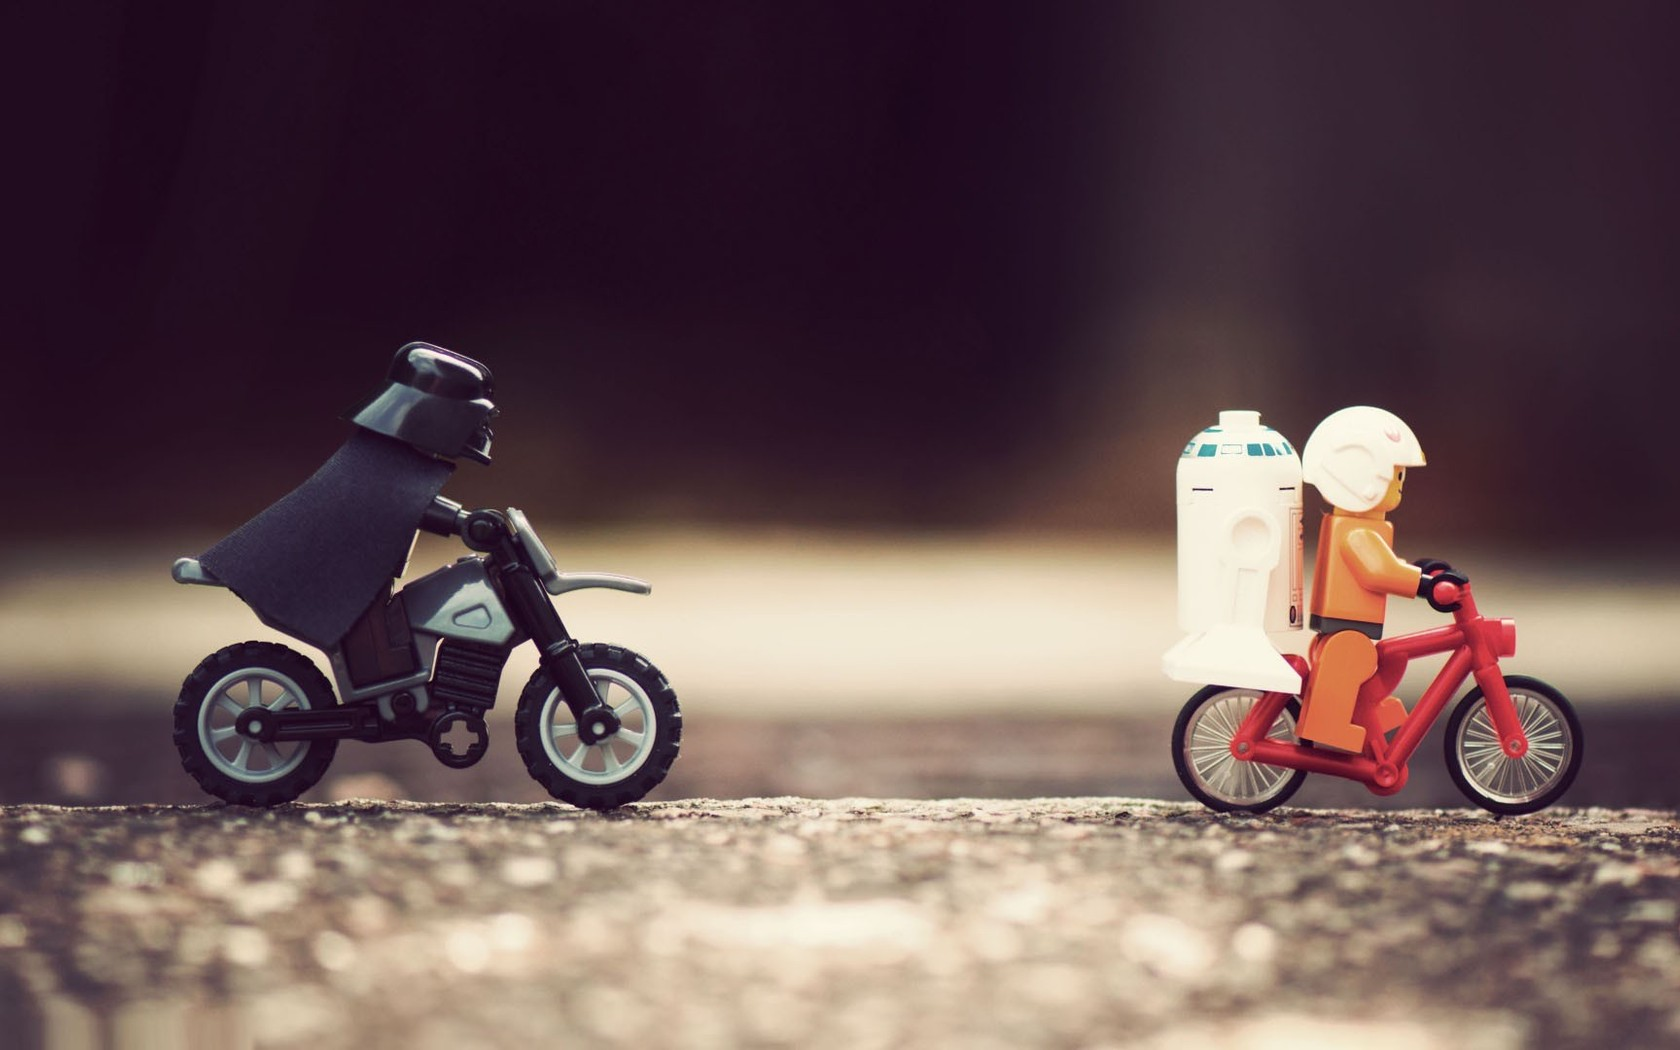 darth vader comes out from keyboard funny wallpaper